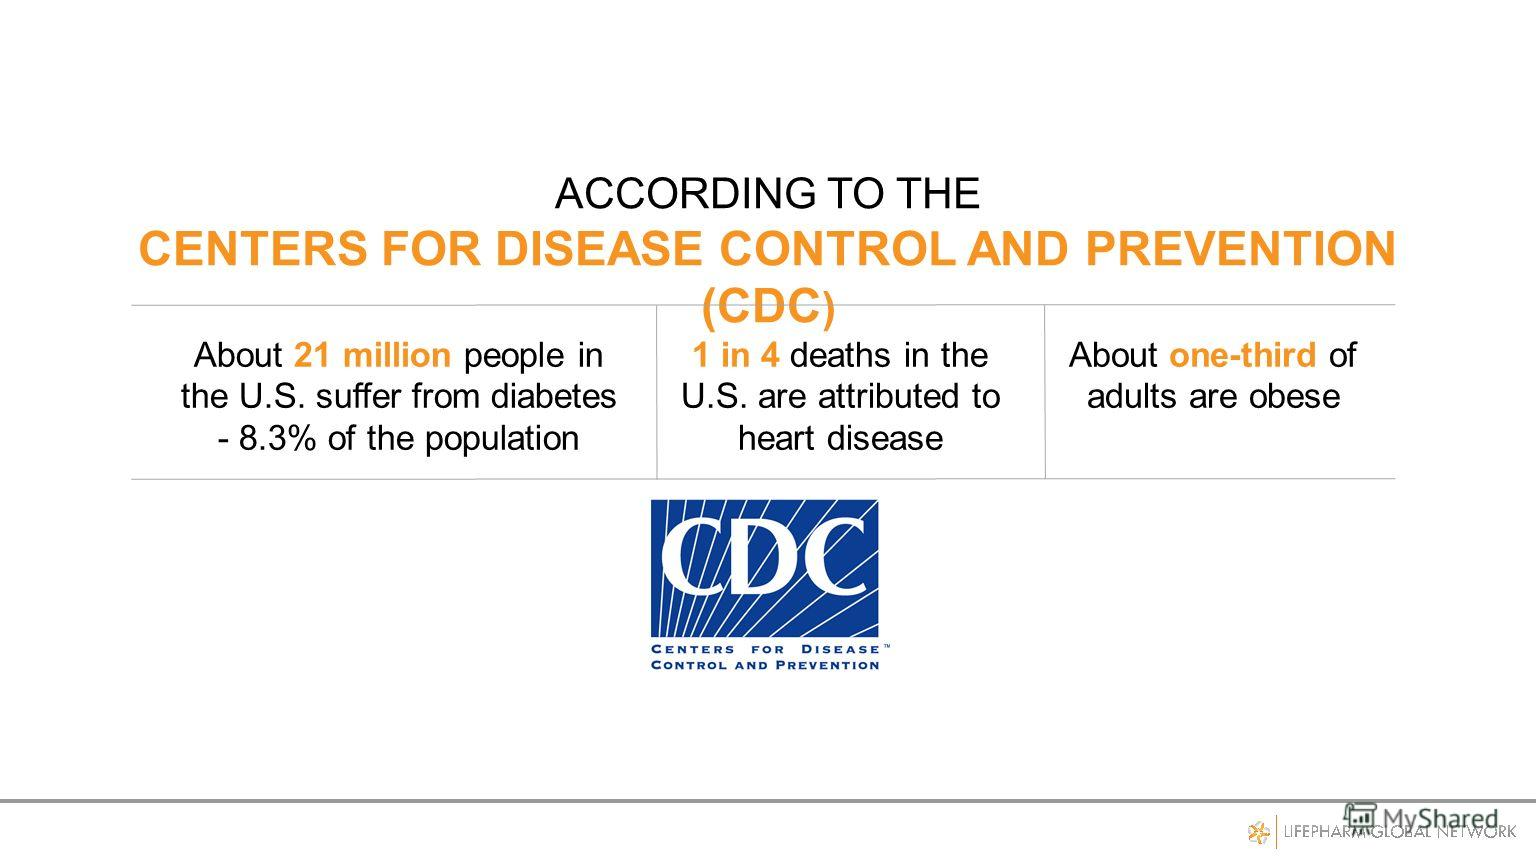 ACCORDING TO THE CENTERS FOR DISEASE CONTROL AND PREVENTION (CDC ) About 21 million people in the U.S. suffer from diabetes - 8.3% of the population 1 in 4 deaths in the U.S. are attributed to heart disease About one-third of adults are obese